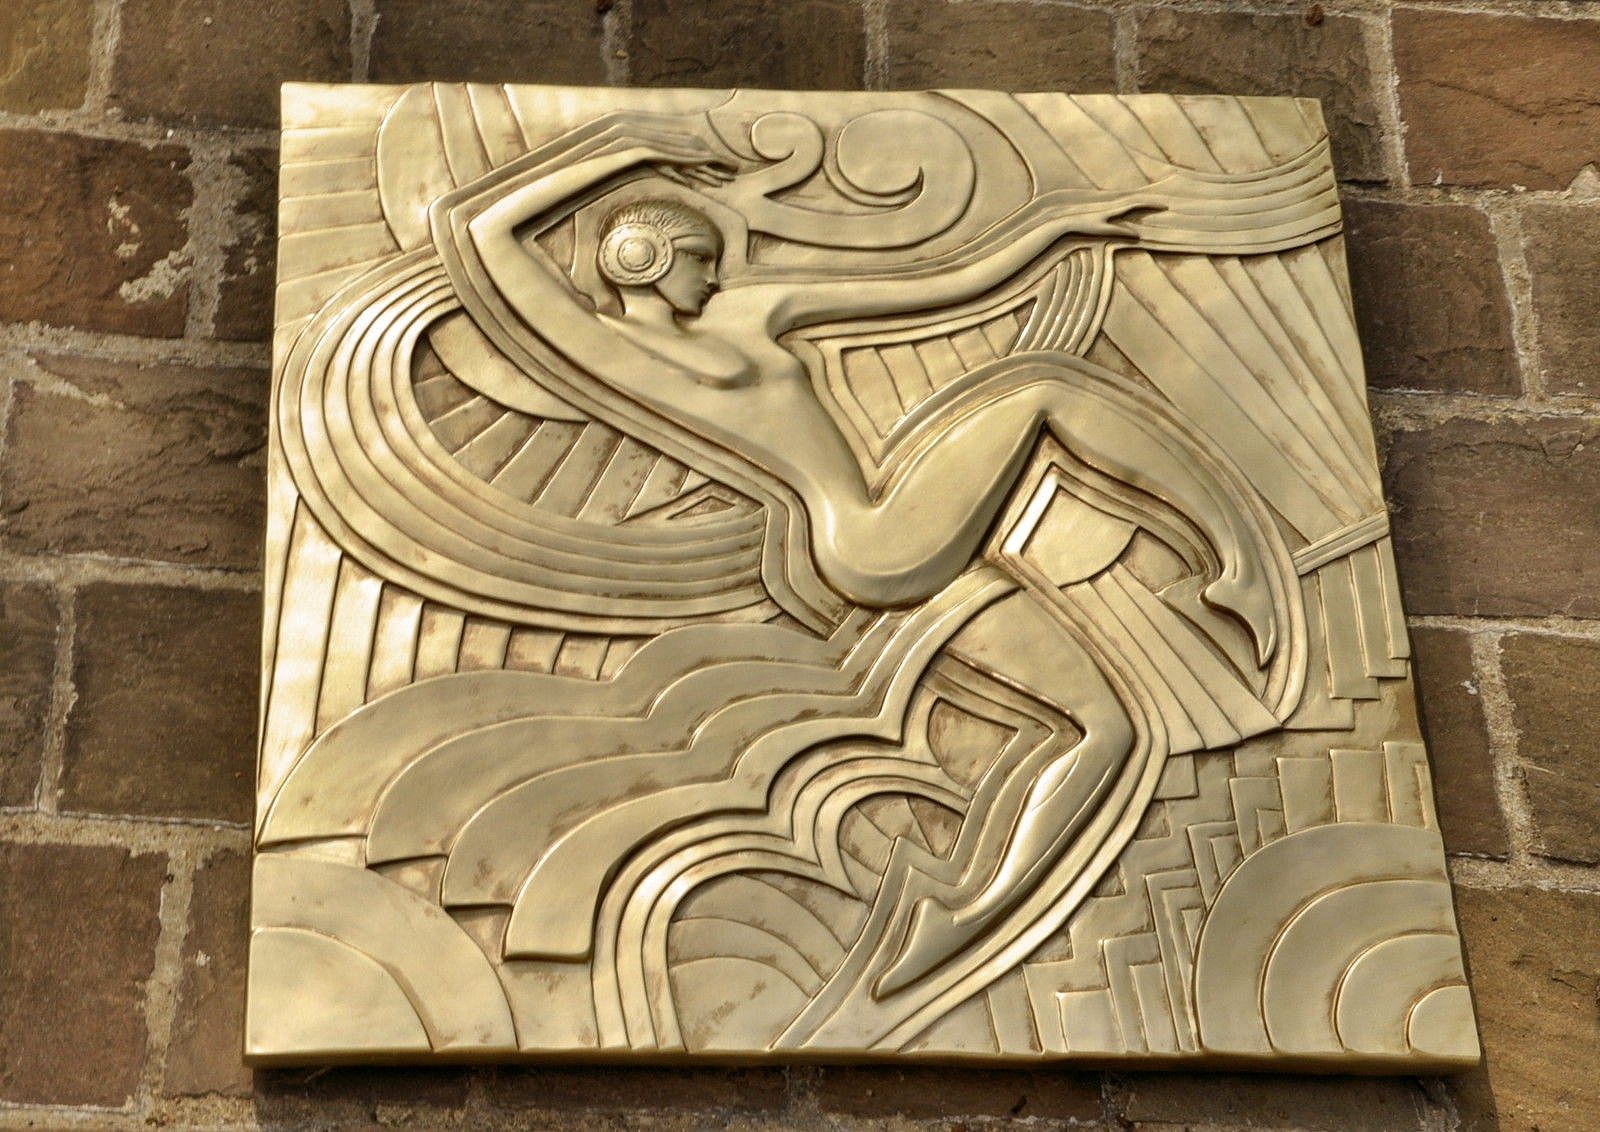 Cute Art Deco Wall Sculpture Ideas - The Wall Art Decorations ...